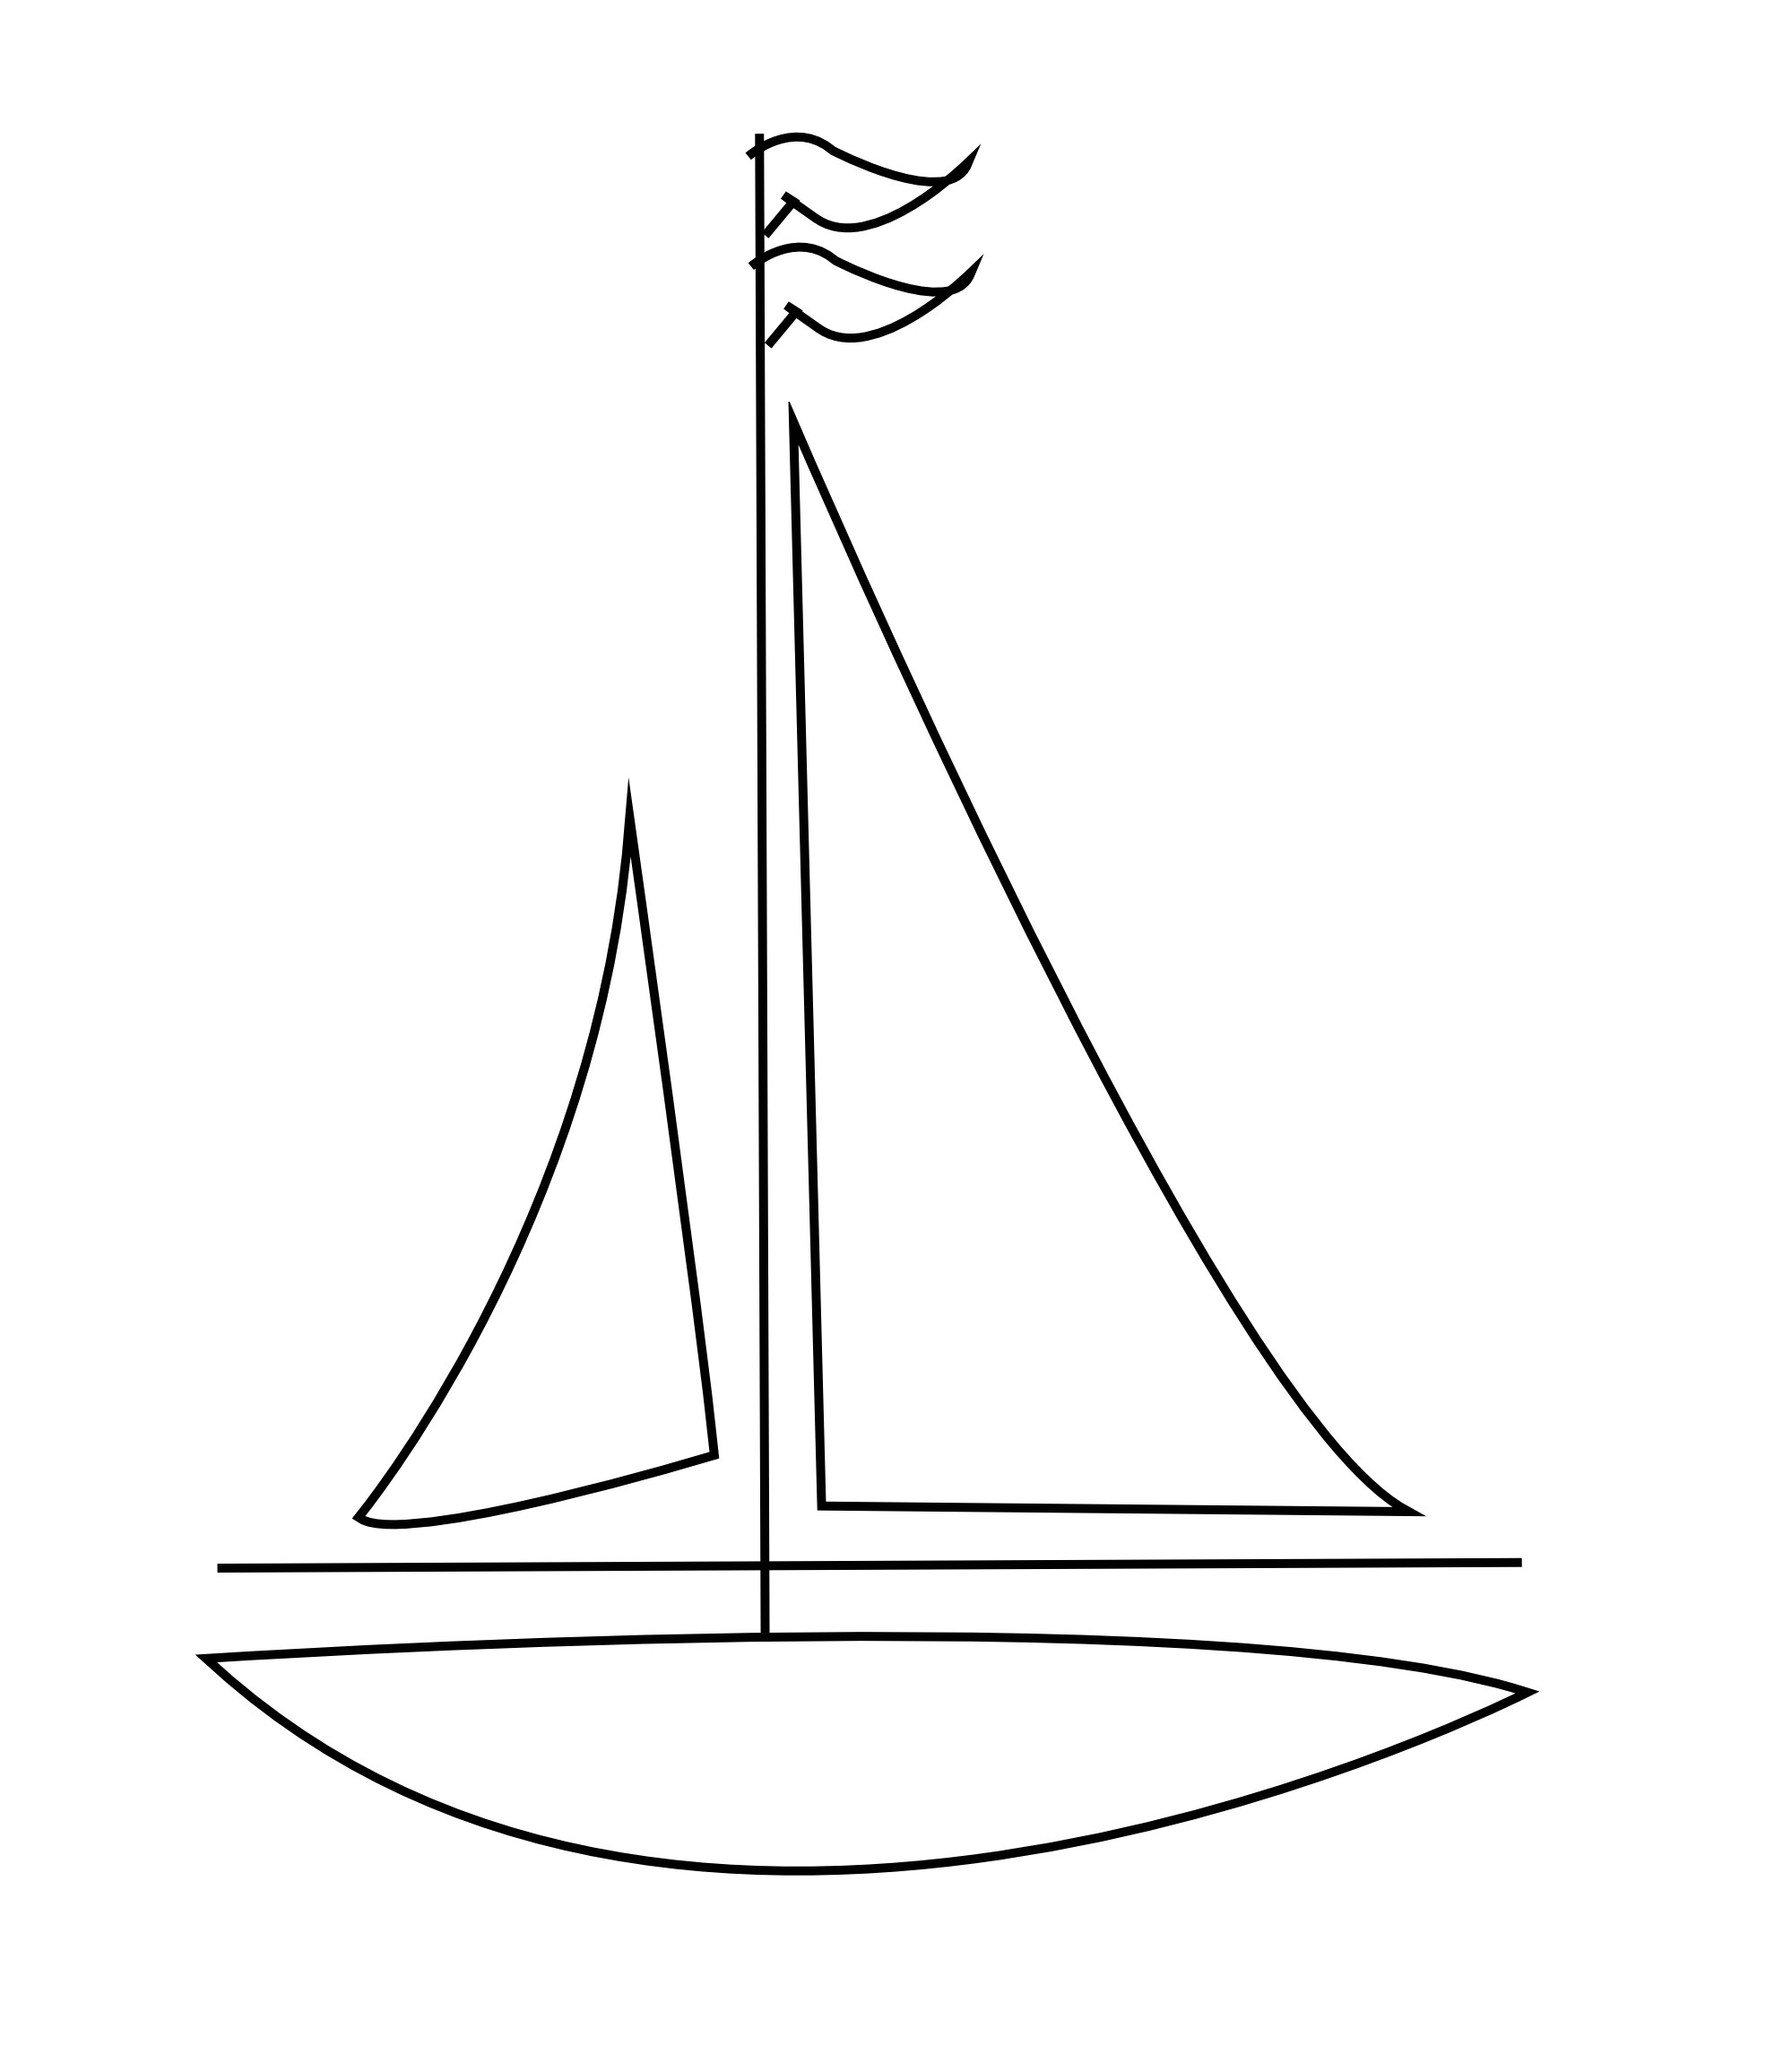 Line Drawing Boat : Sailboat clipart black and white clipground